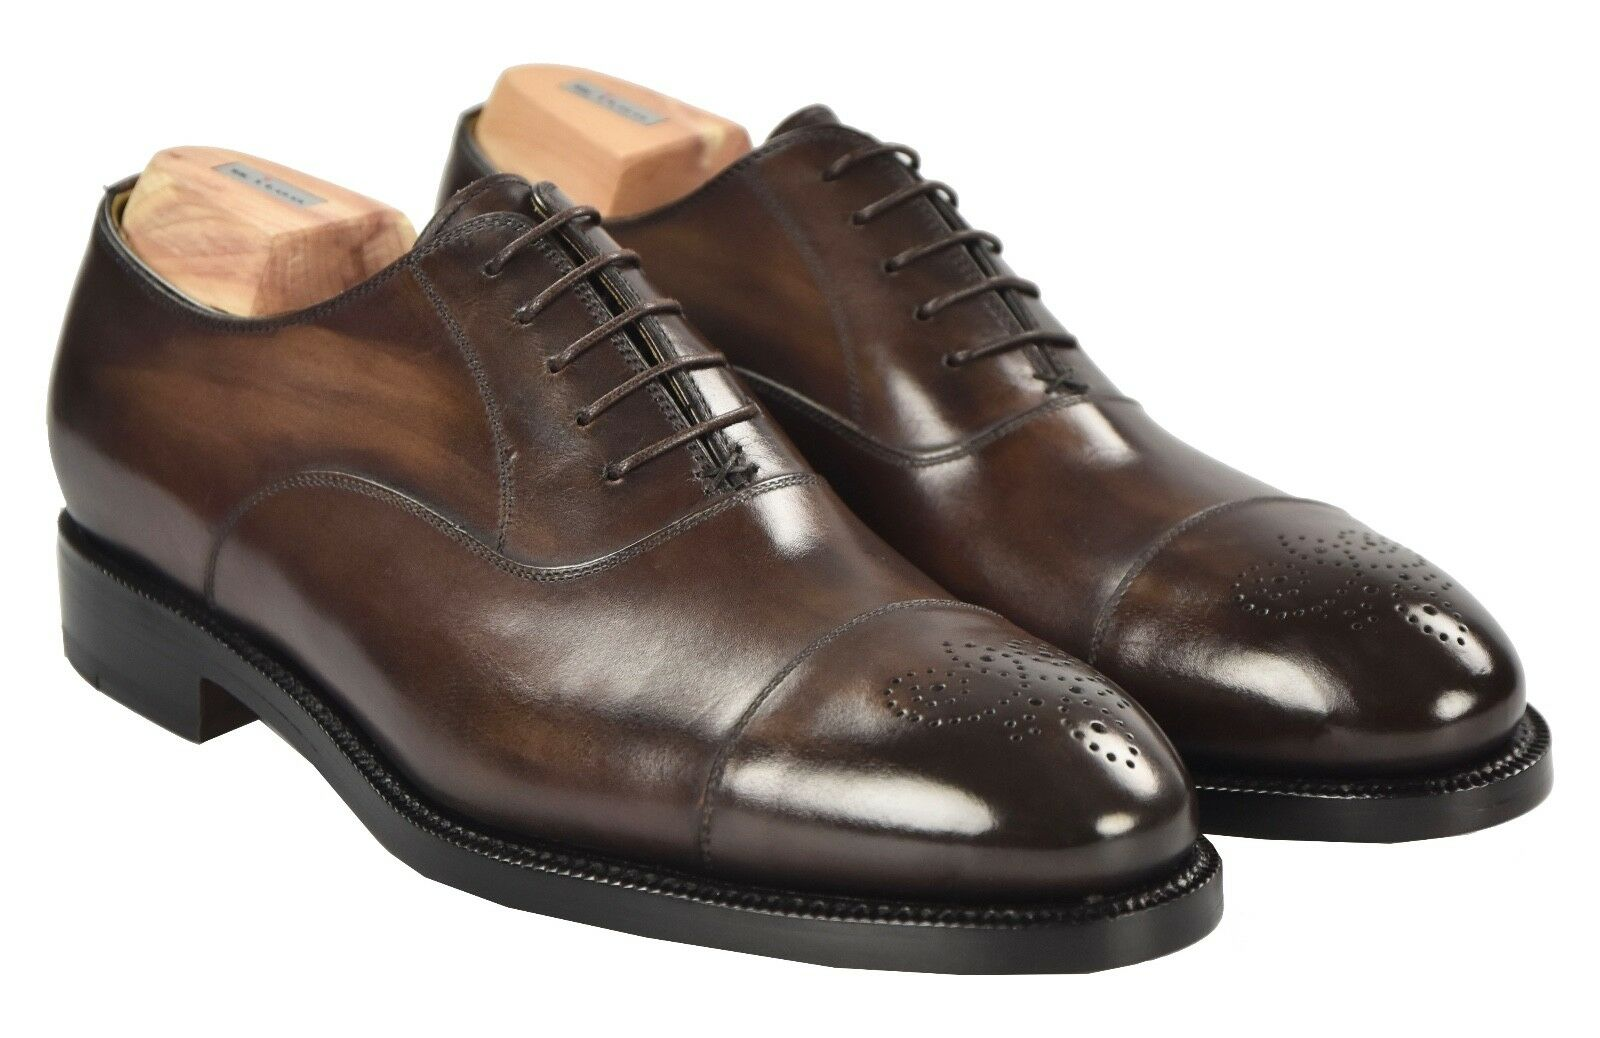 fc21aa216 NEW KITON NAPOLI SHOES LEATHER SIZE 10 US EU KSH84 100% 43  ngdcbn8876-Athletic Shoes